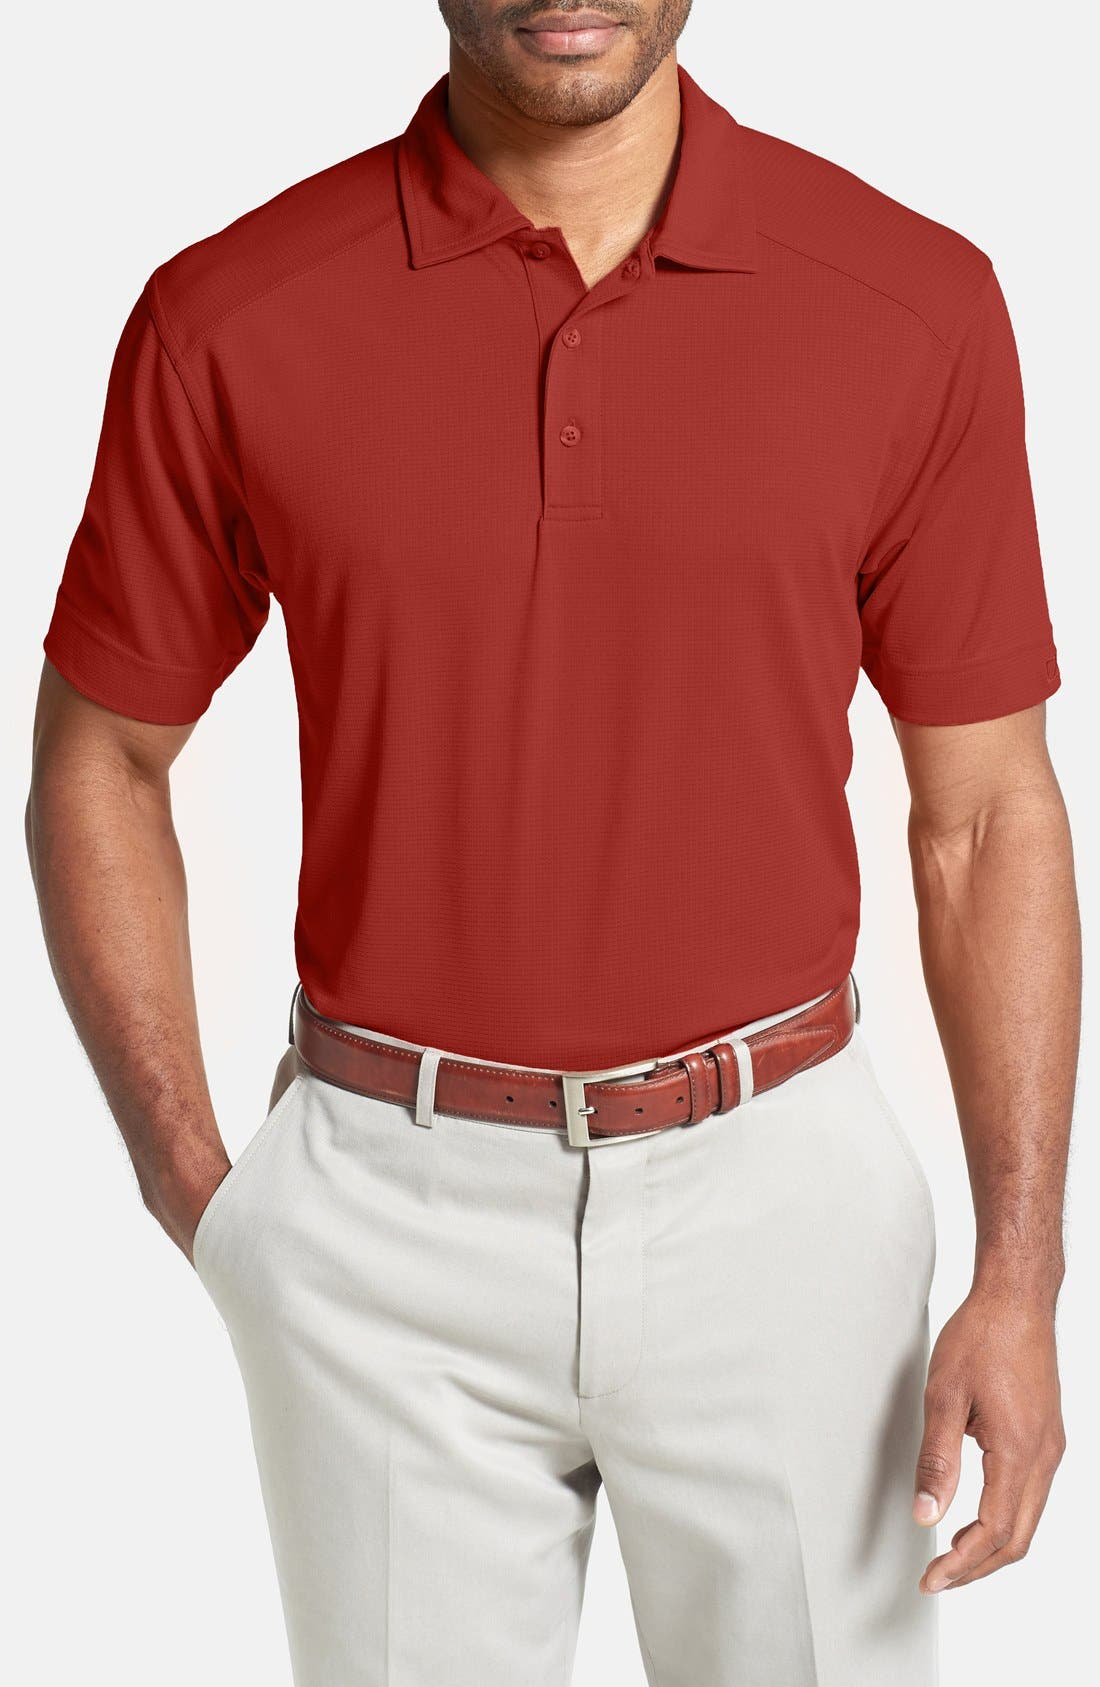 'Genre' DryTec Moisture Wicking Polo,                             Main thumbnail 1, color,                             CARDINAL RED